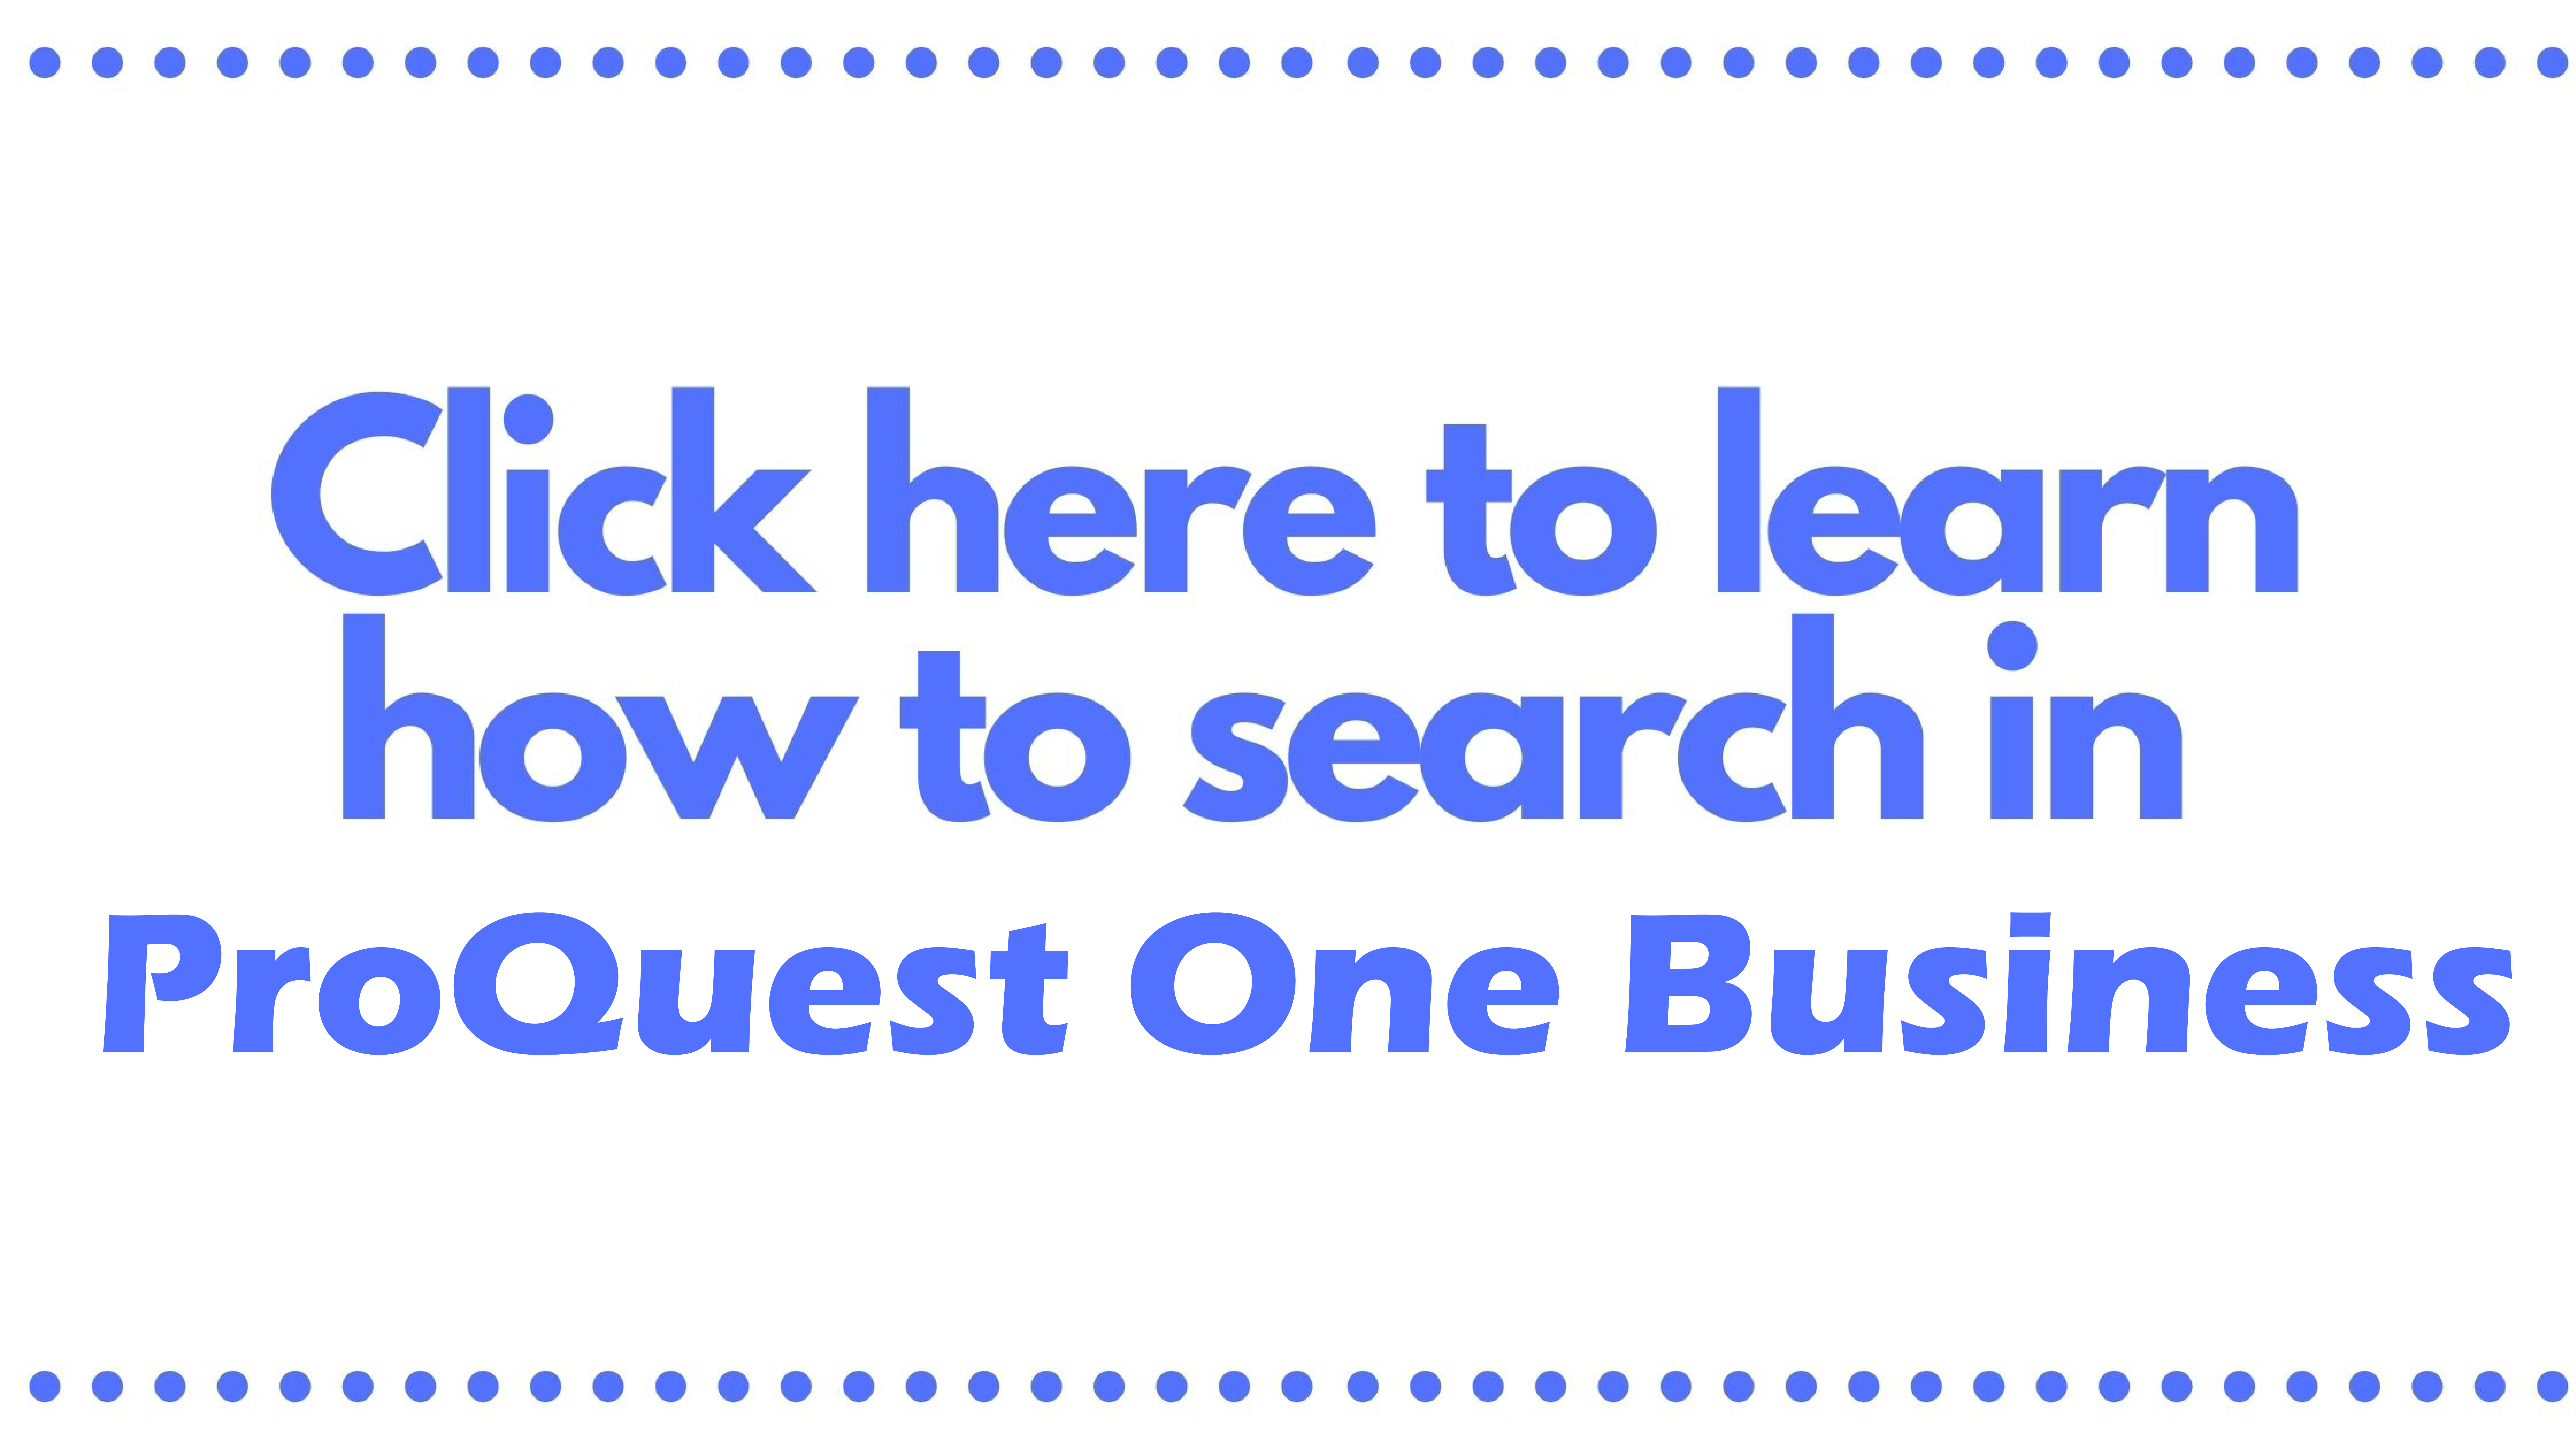 Click here to learn how to search in ProQuest One Business